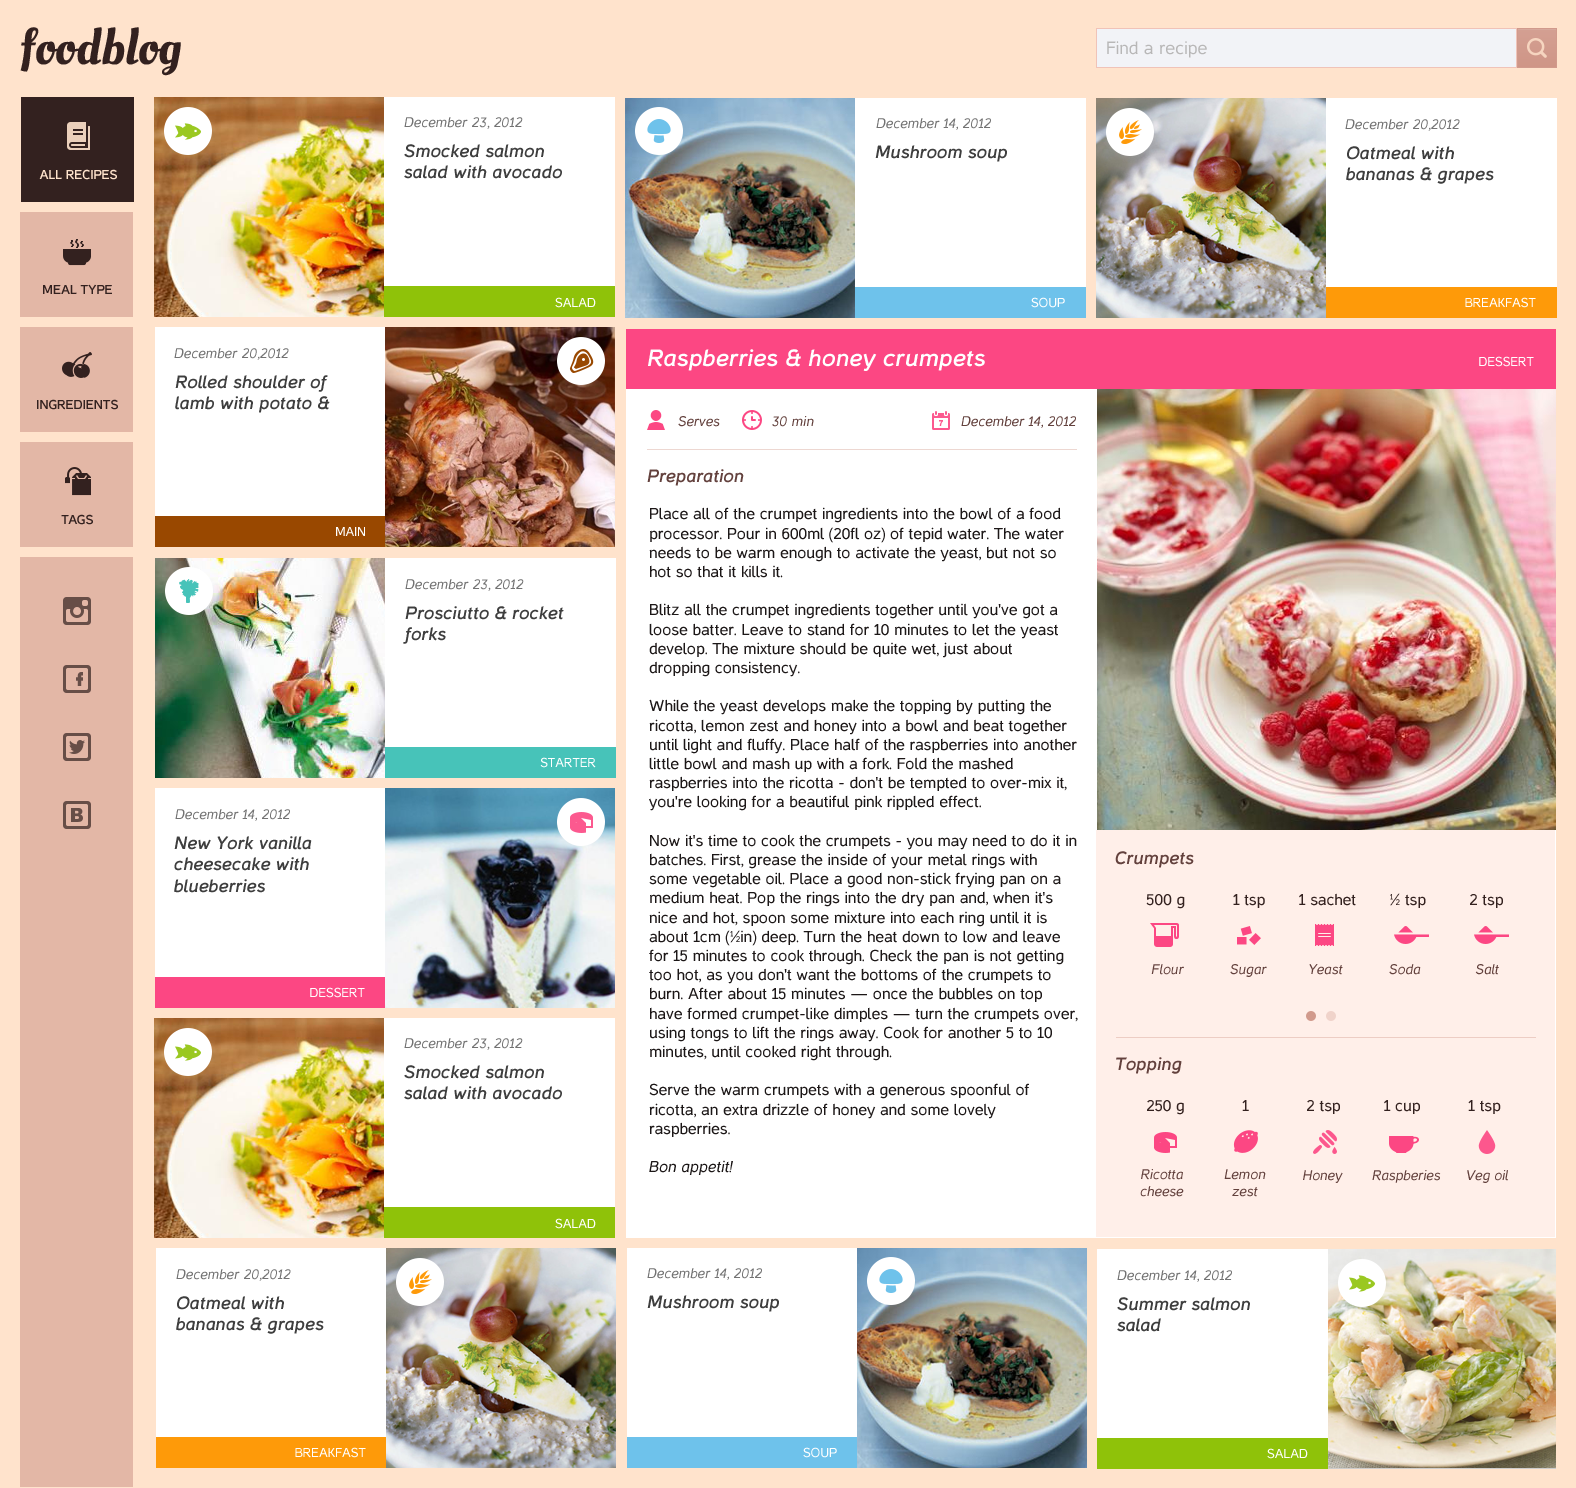 Food blog free template psd download download psd food blog free template psd www website template website layout website webpage forumfinder Choice Image